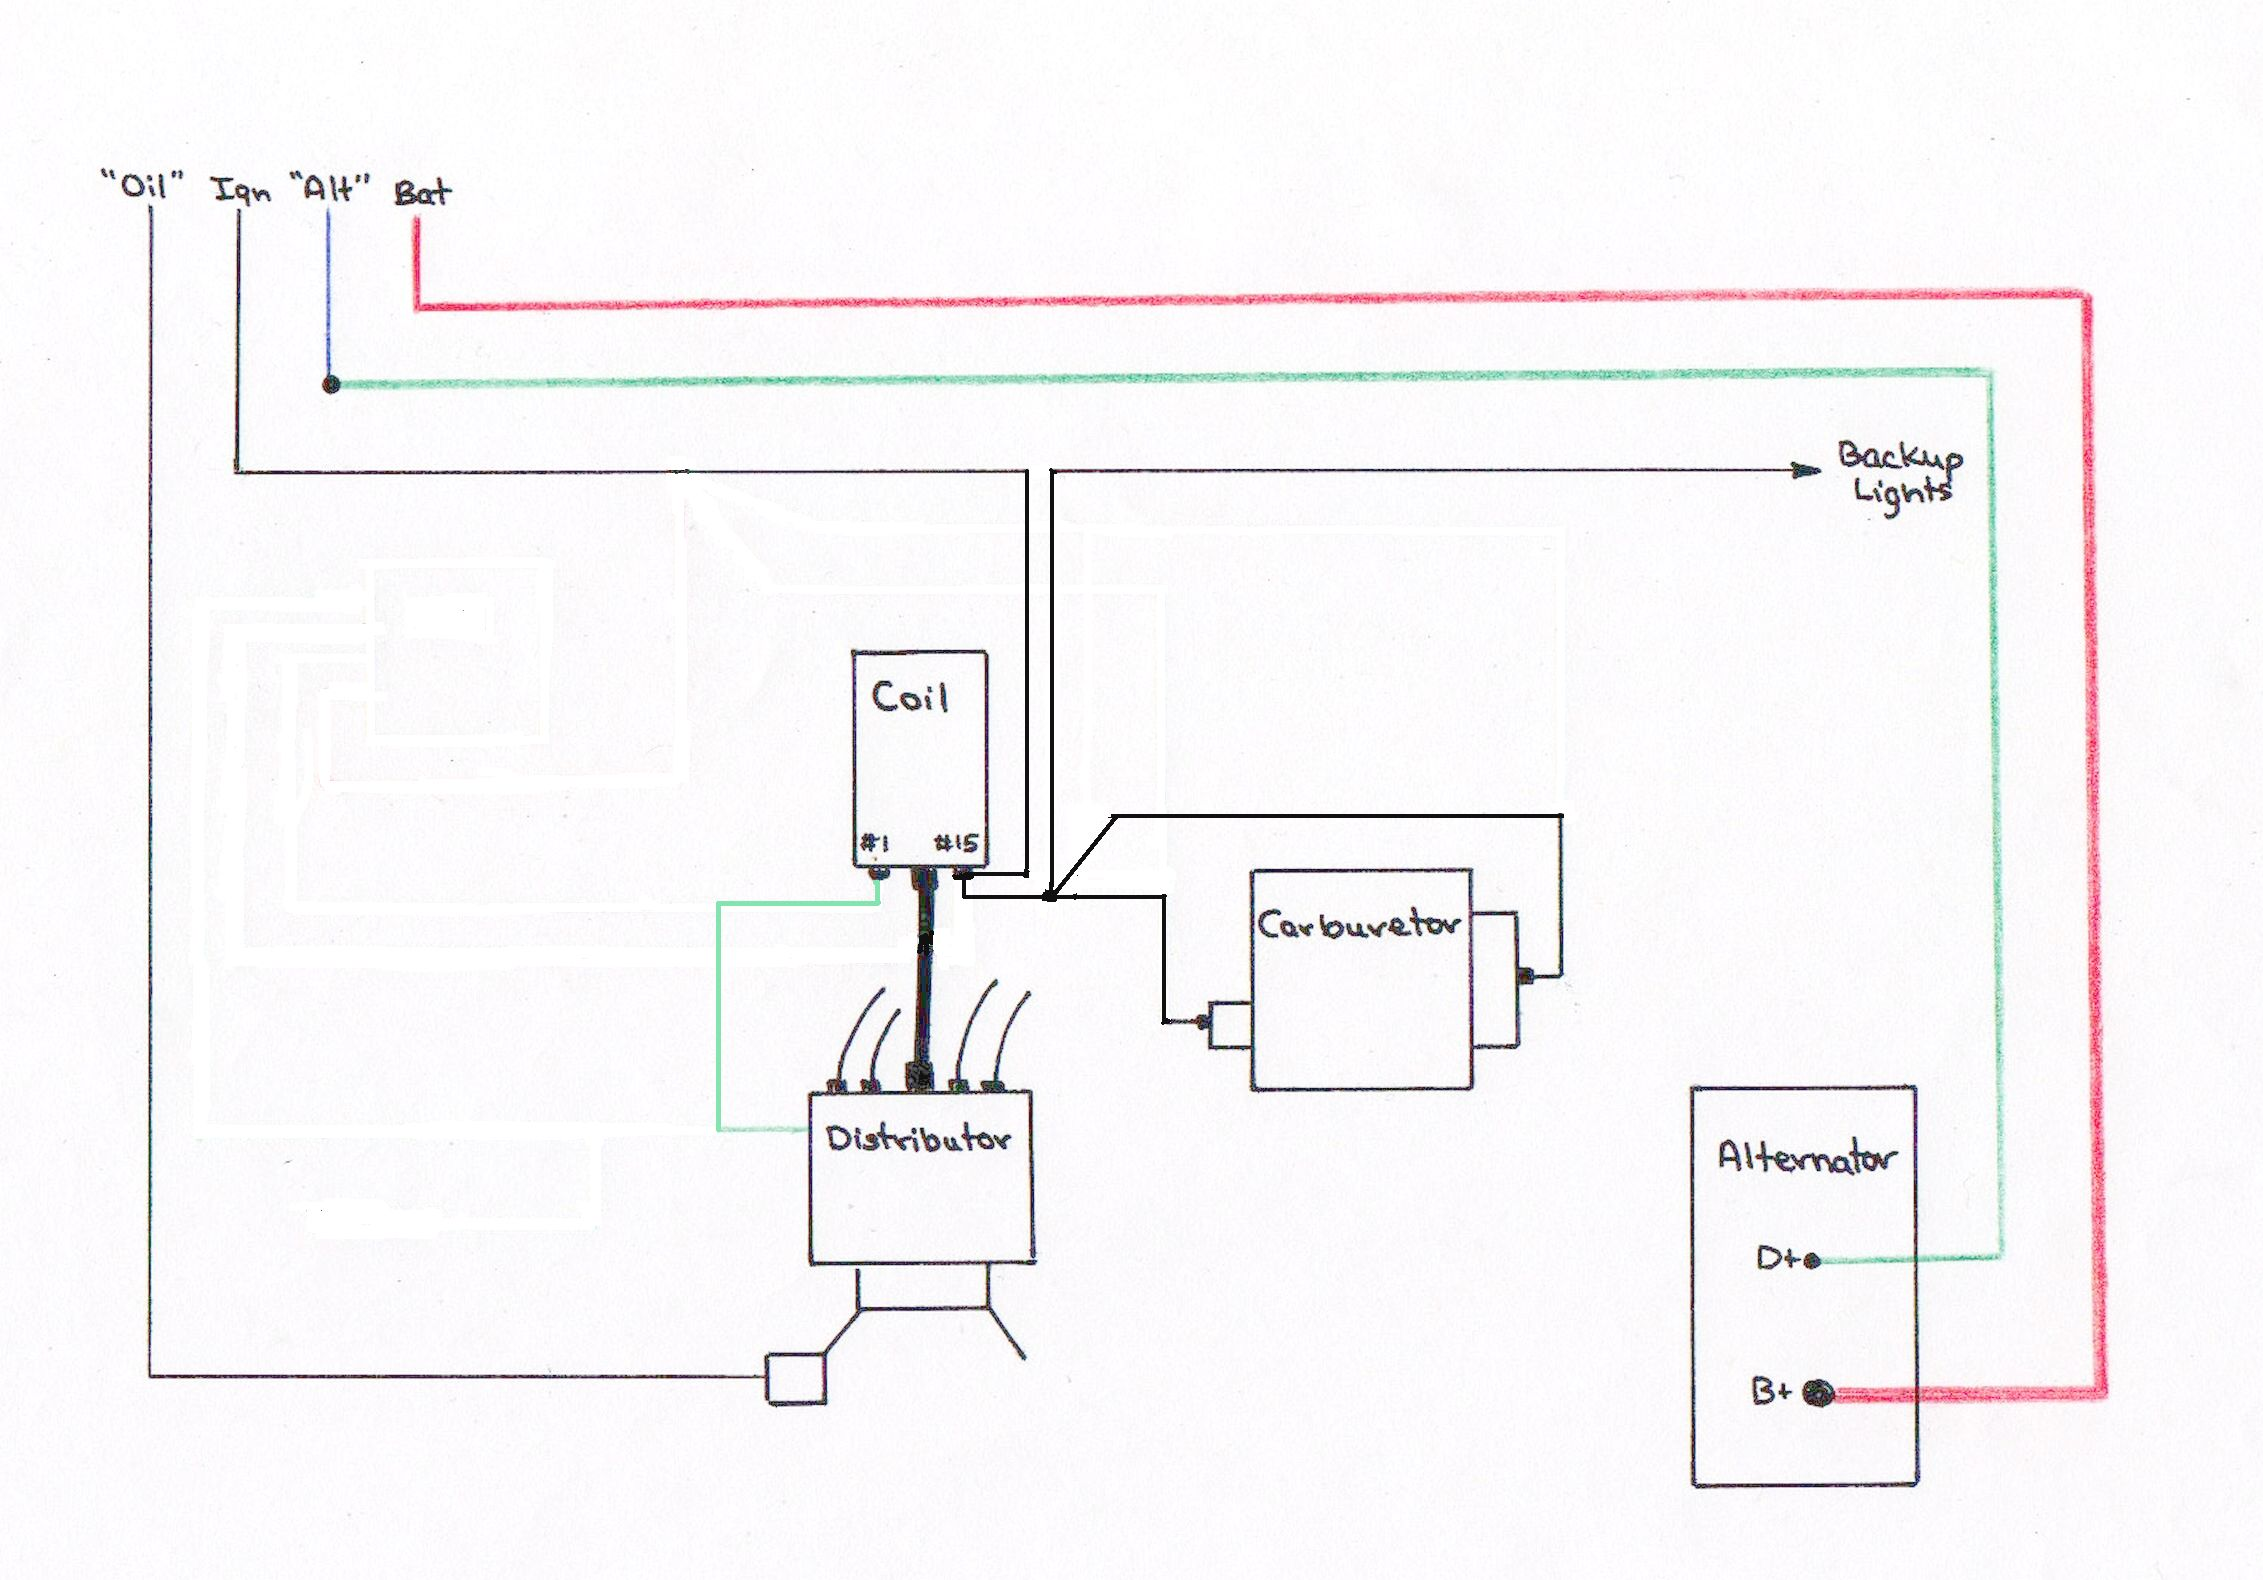 handdrawn_schematic alternator wiring valeo alternator regulator wiring diagram at crackthecode.co